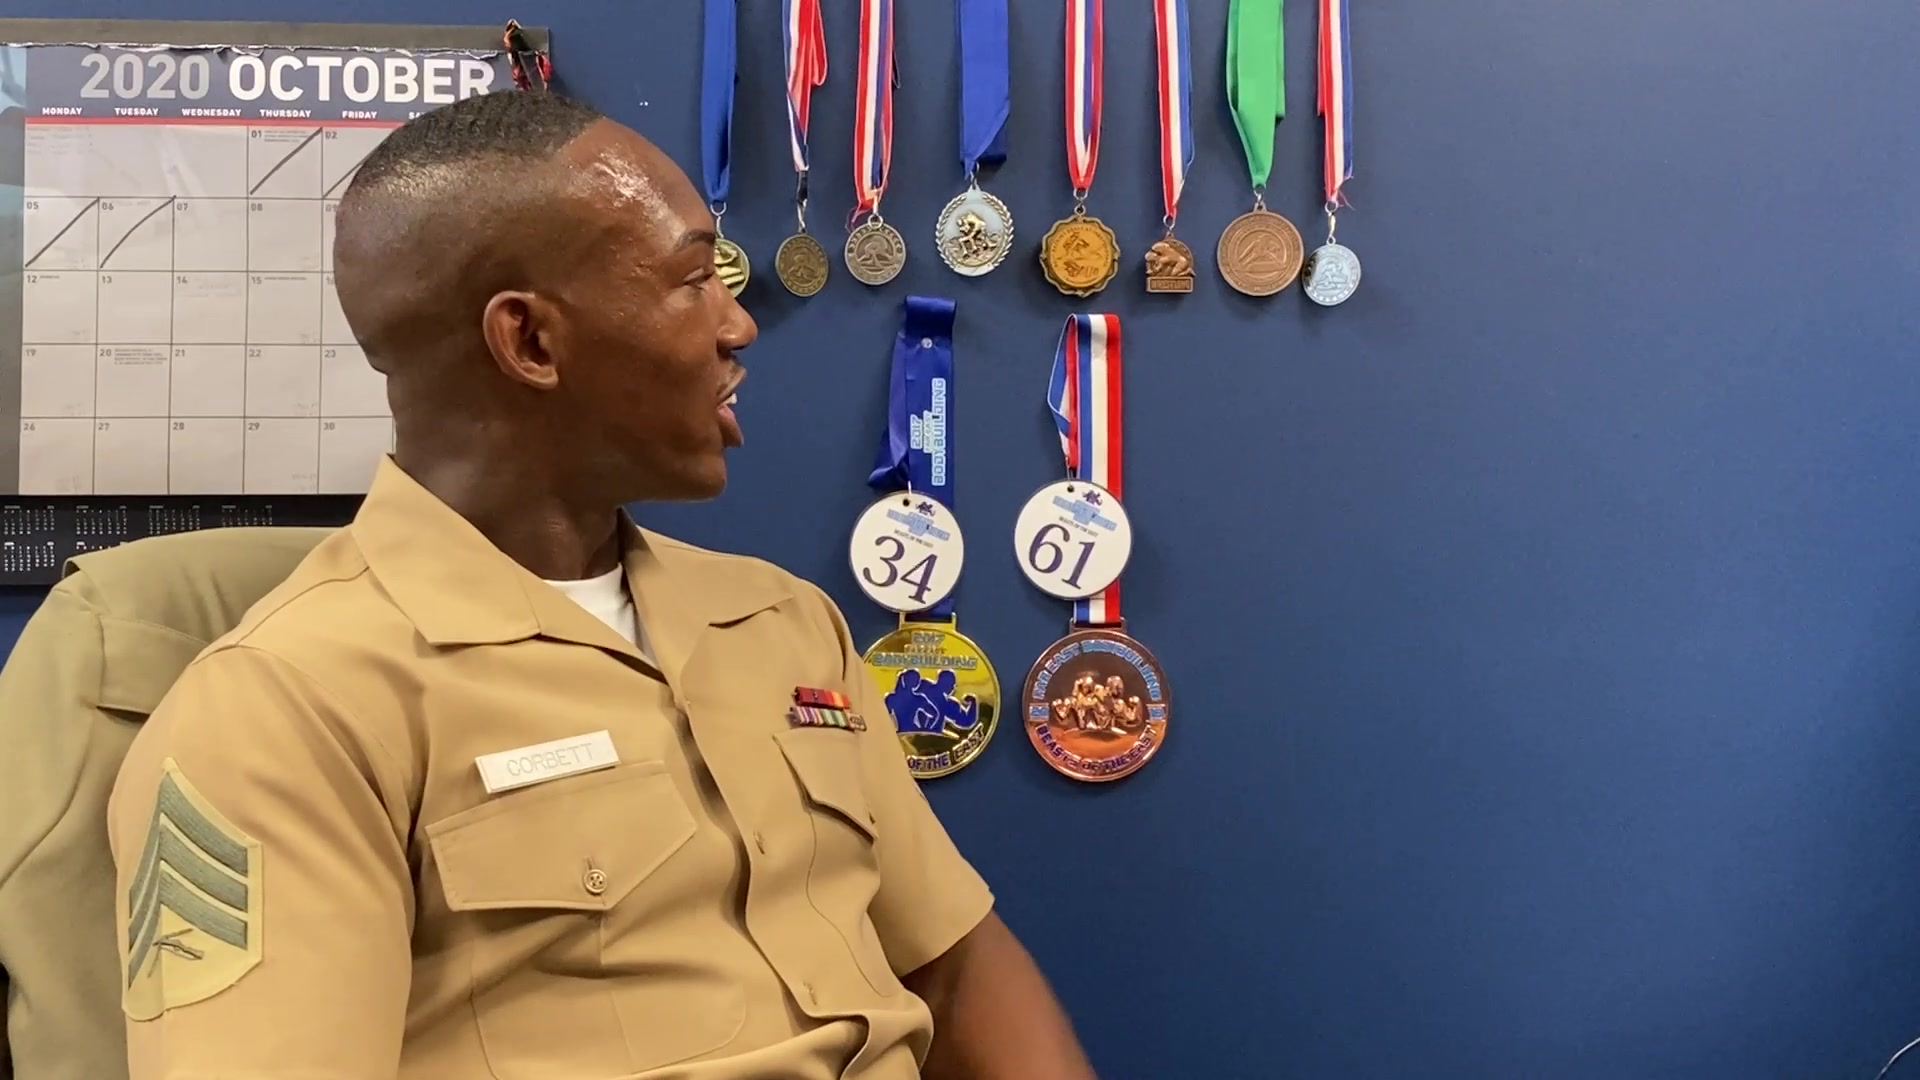 Sgt. Artemas Corbett explains how his past experiences have helped him be a successful recruiter in Orange City, Florida, on Oct. 7, 2020. Corbett is a recruiter at Recruiting Substation Daytona Beach, Recruiting Station Jacksonville, 6th Marine Corps District. (U.S. Marine Corps video by Cpl. Marvin Chavez)